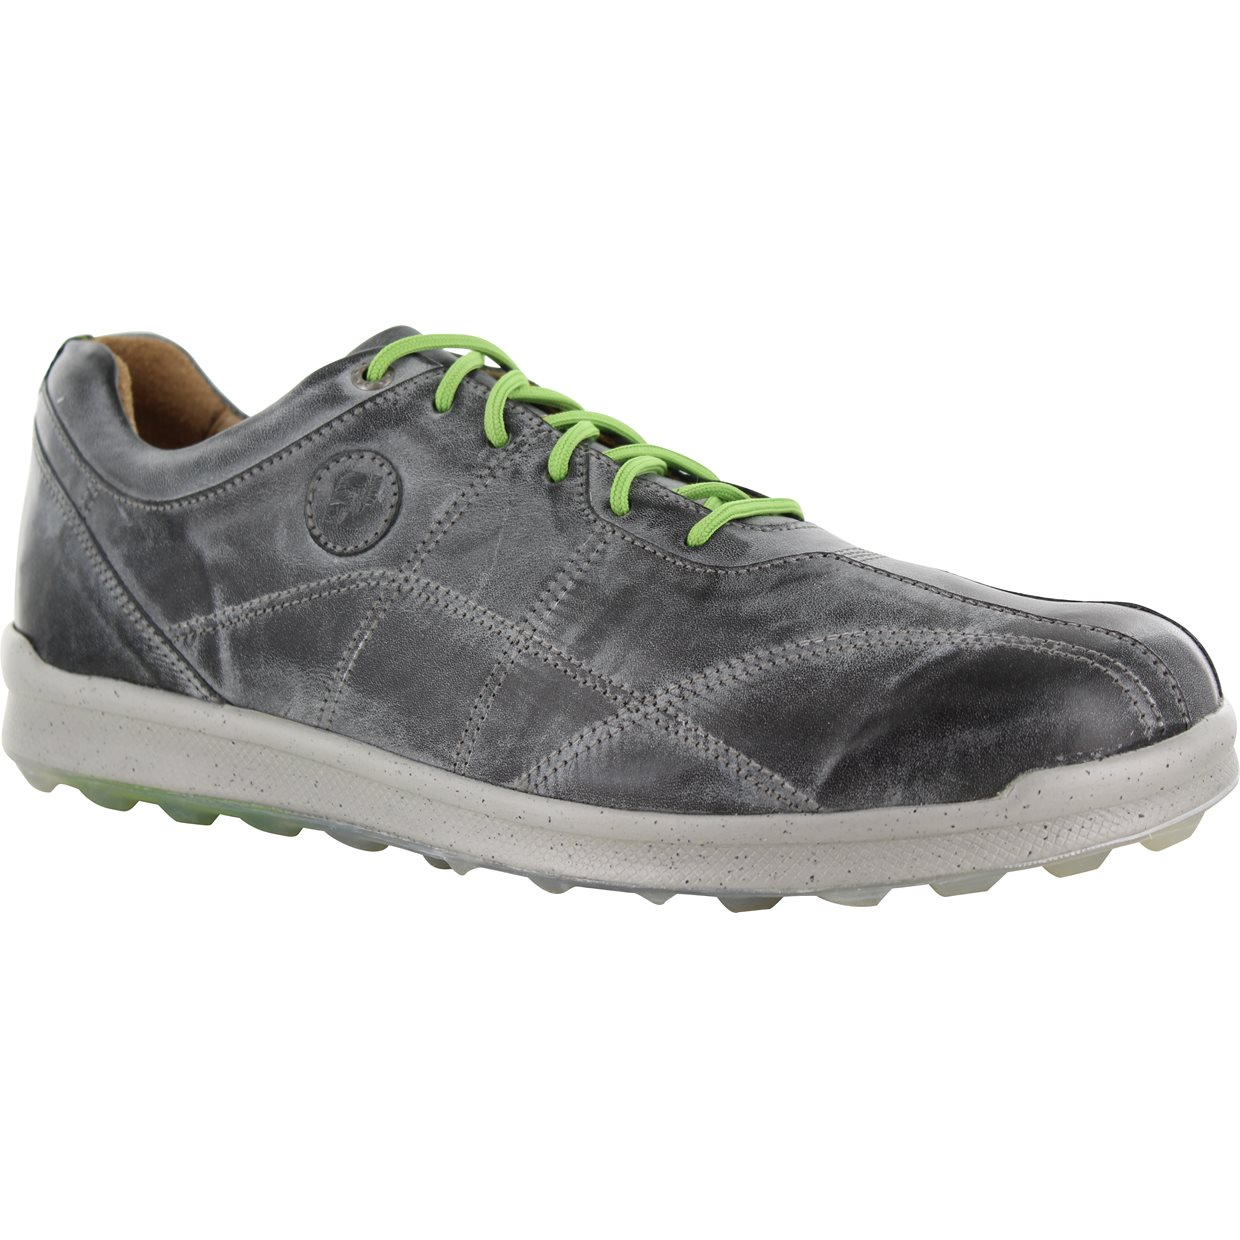 Used Golf Shoes For Sale